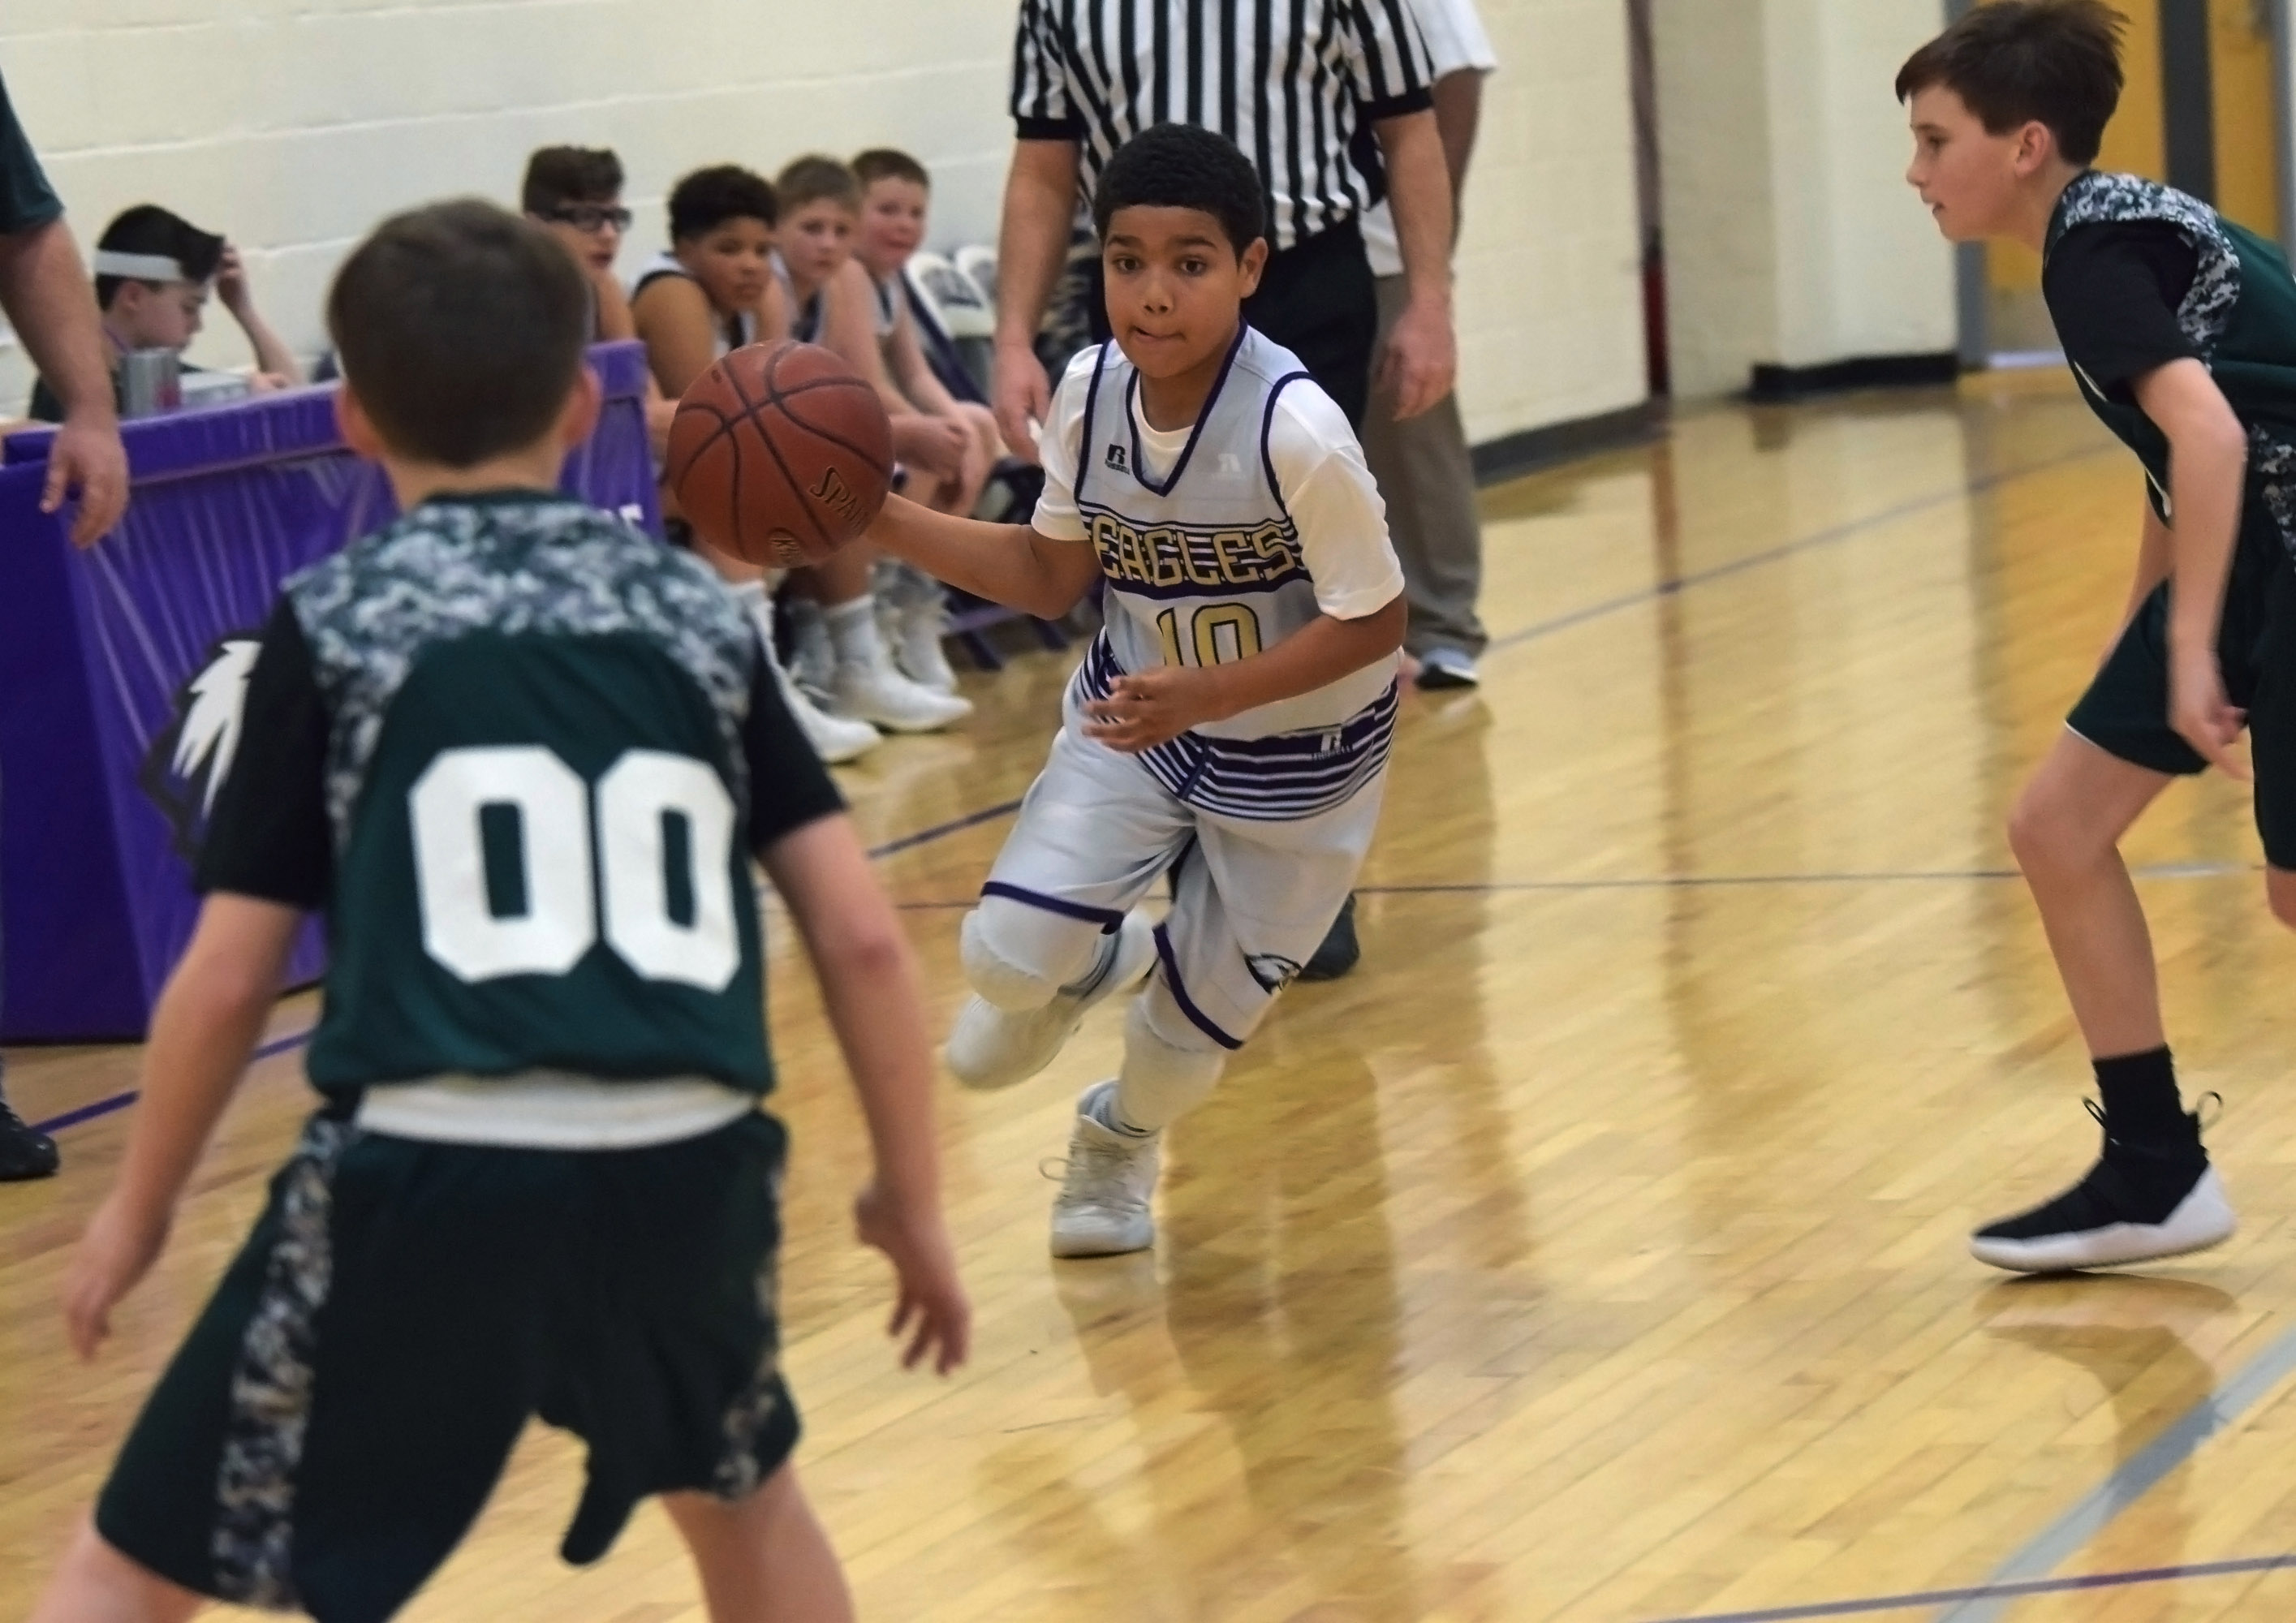 CMS sixth-grader Tashaun Hart drives the ball to the basket.